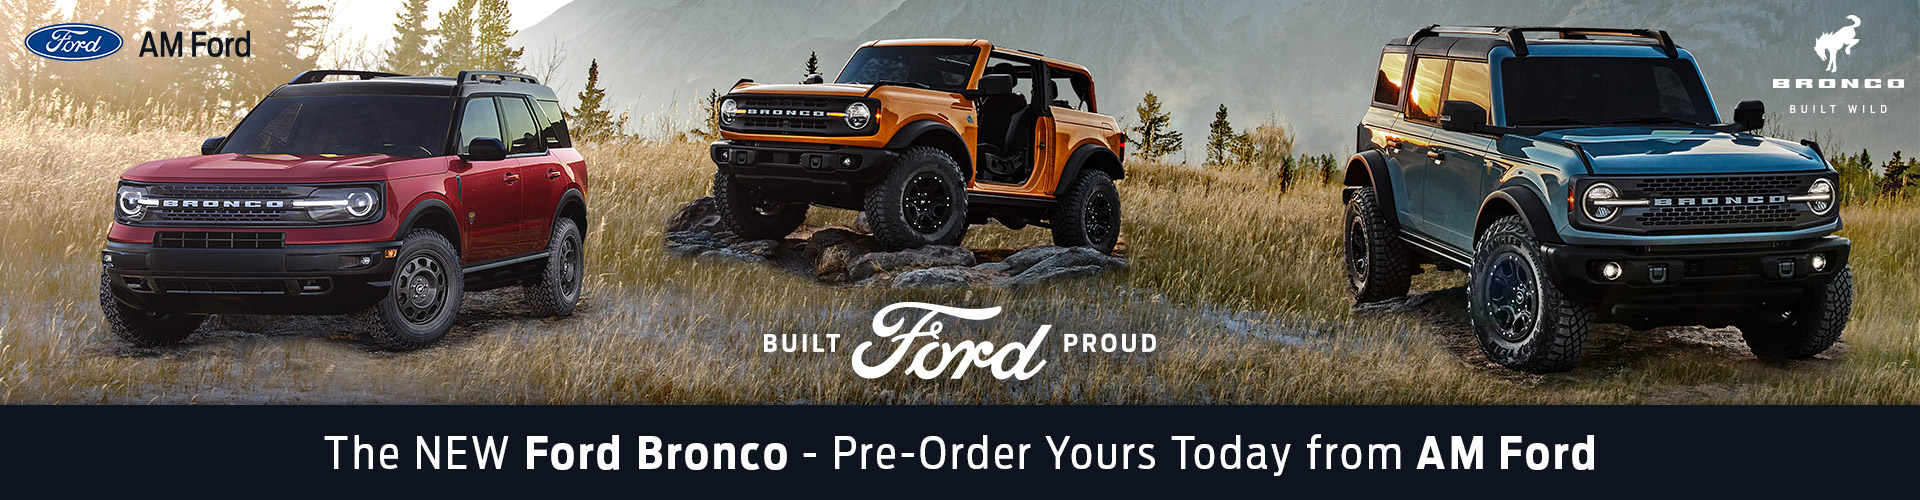 AM Ford - Ford Bronco Pre-Order.jpg